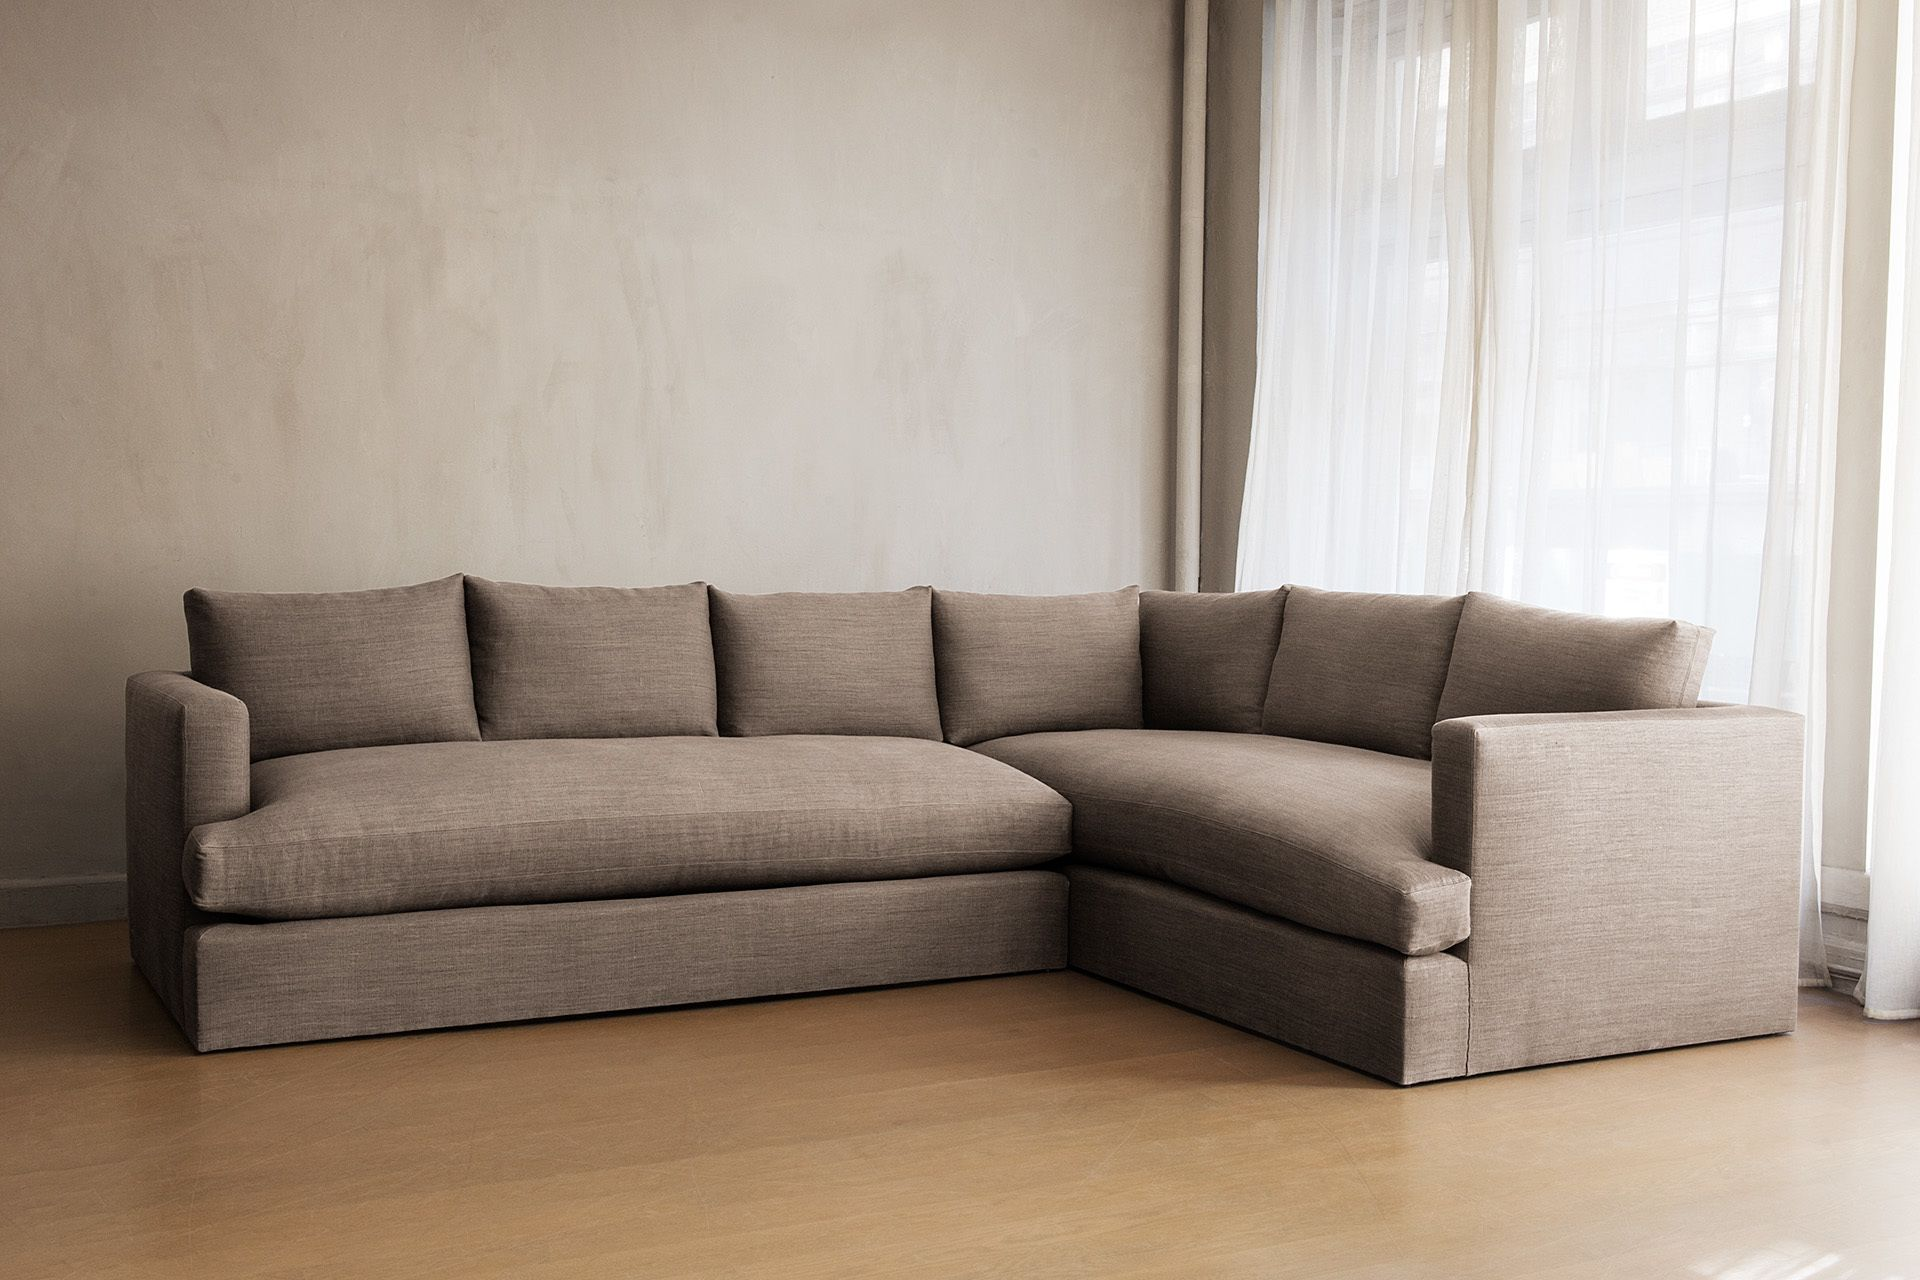 Chelsea Square Sectional Sofa Dmitriy Co With Images Timeless Furniture Sectional Sofa Home Decor